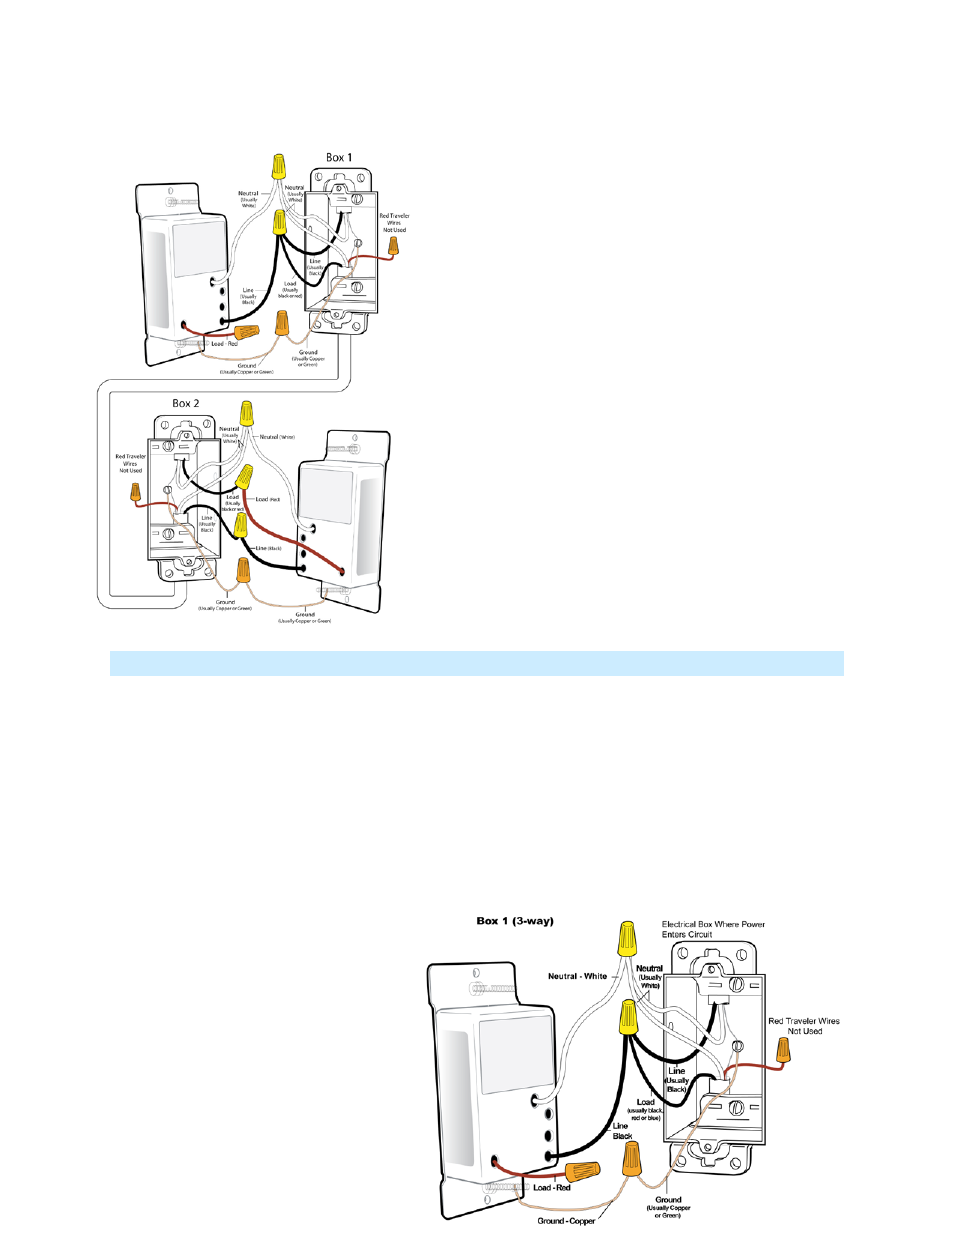 Insteon 4 Way Switch Wiring Diagram For Light Libraryinstallation U2013 Circuit With 3 Or More